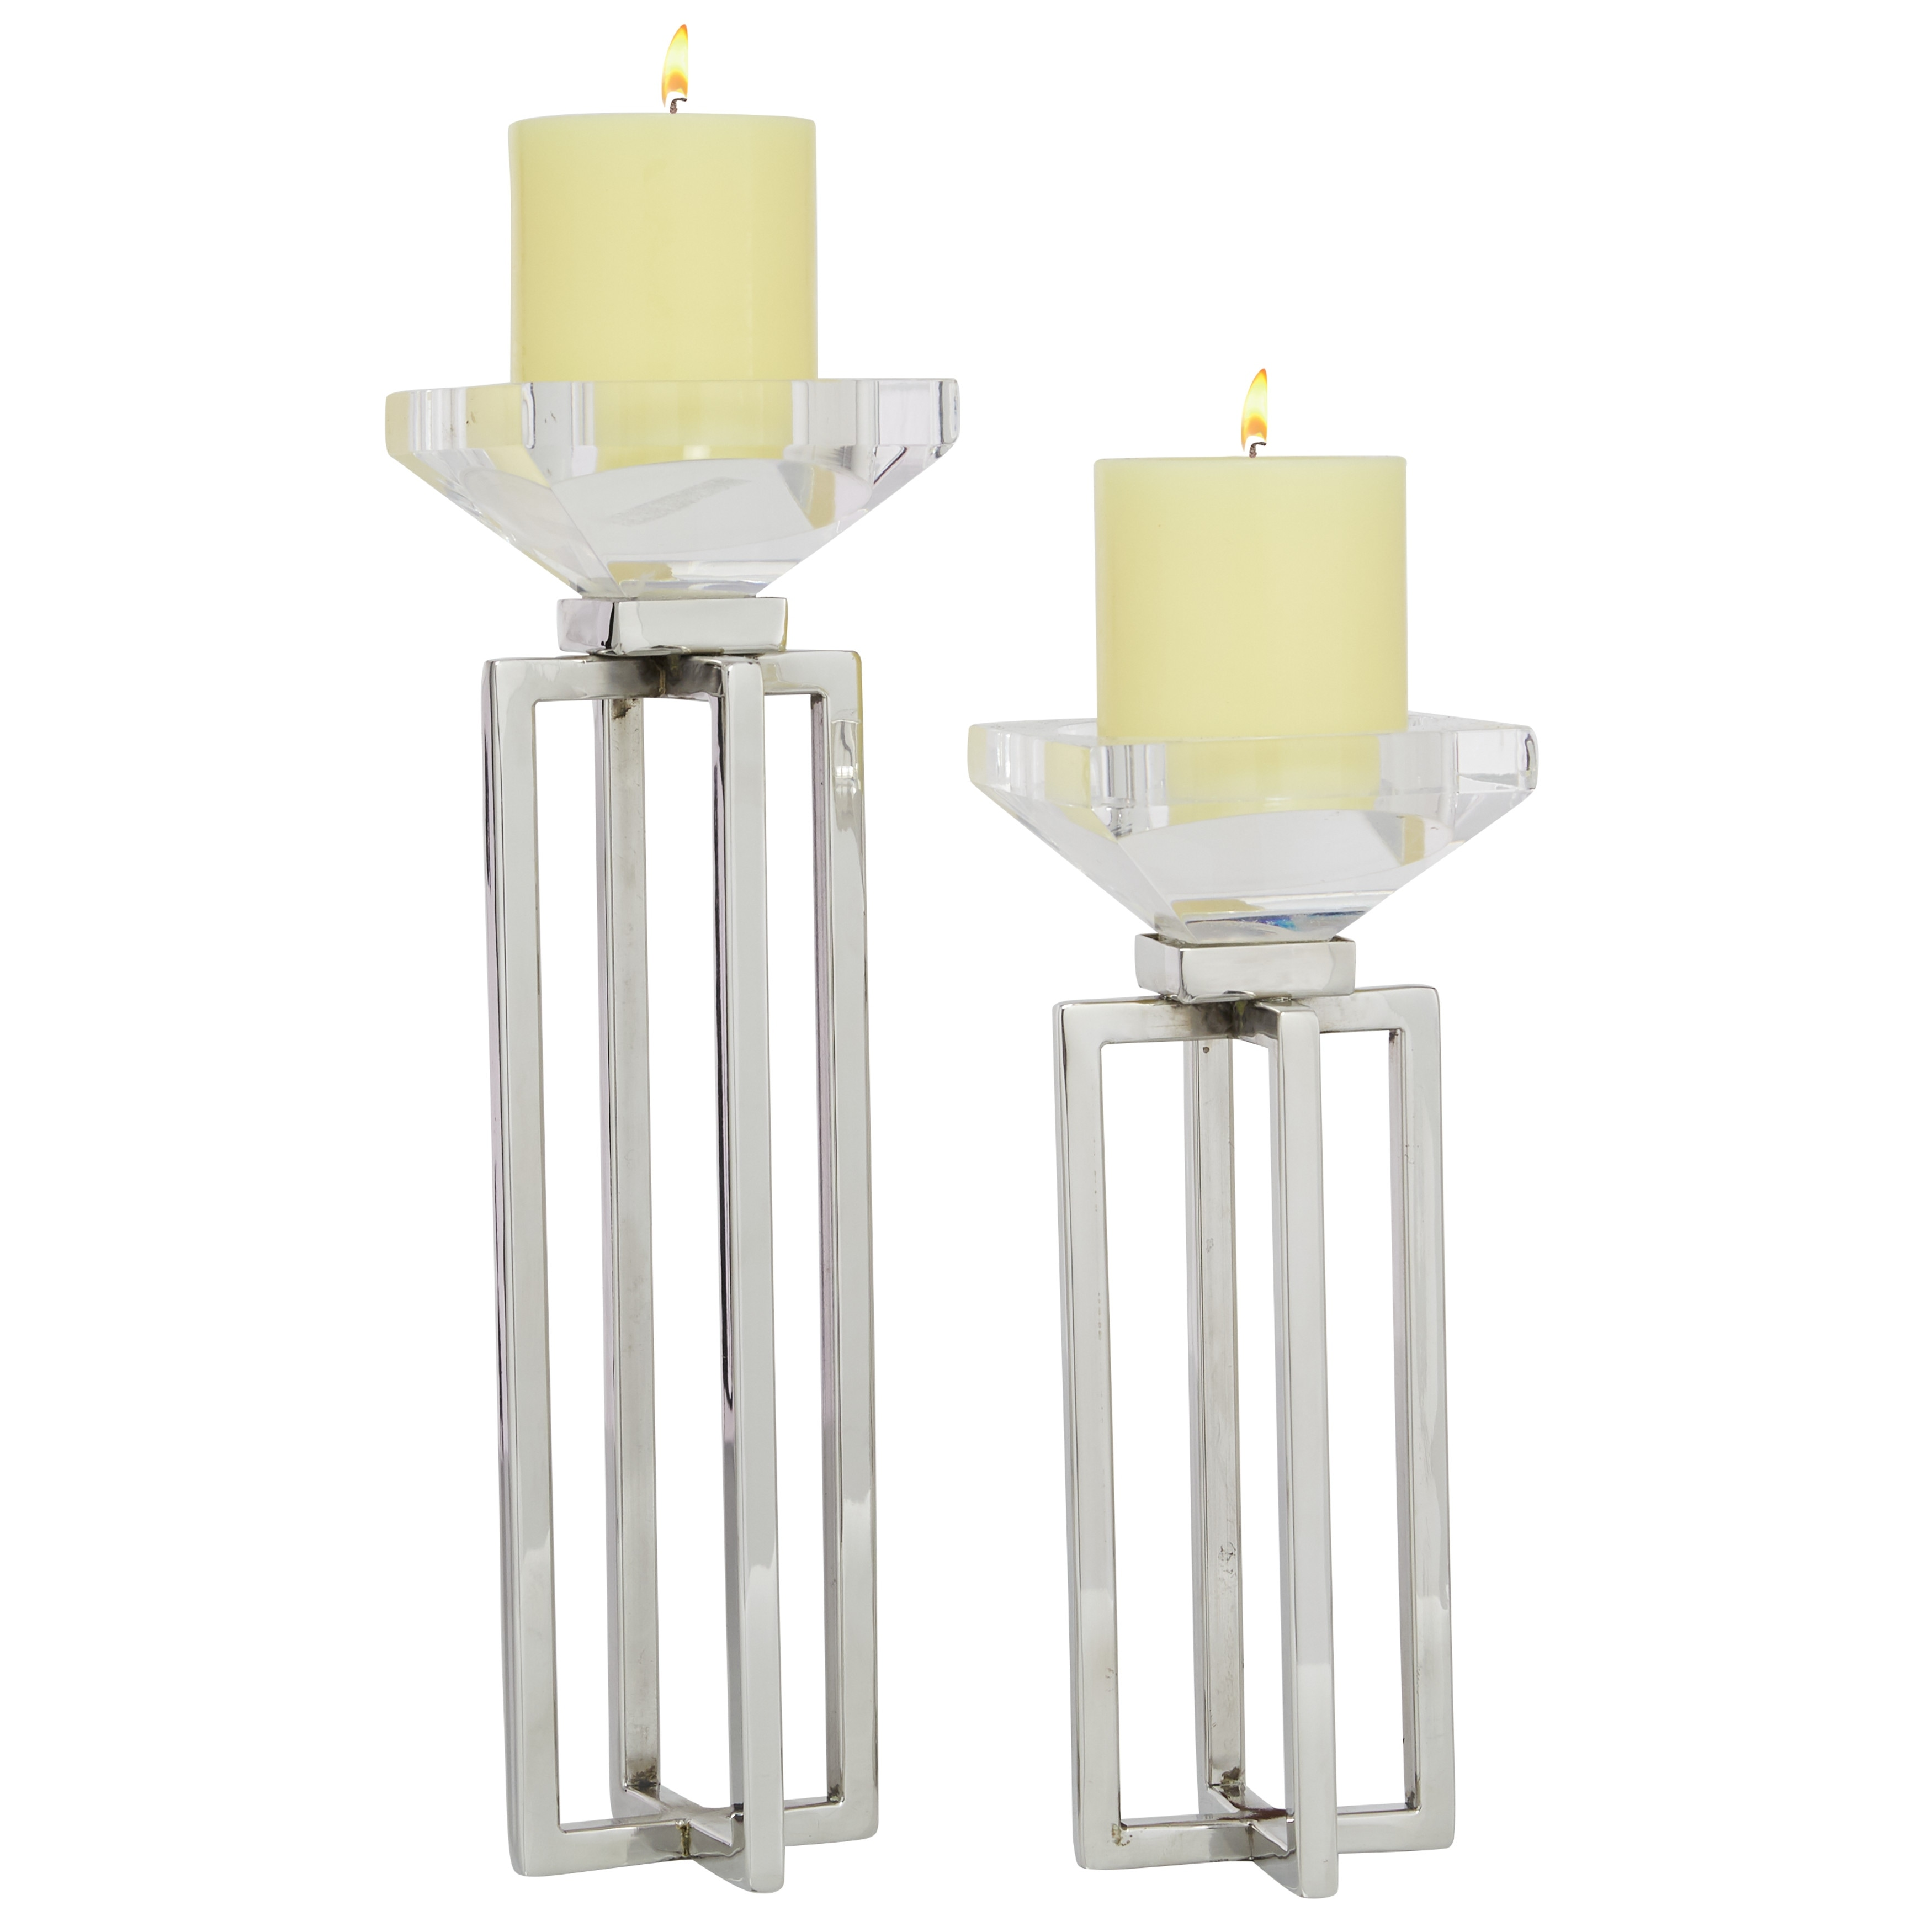 2 Pcs Candle Holders For Pillar Candles Modern Glass And Stainless Steel Centerpieces For Home Silver 4 X 4 X 13 Overstock 32141491